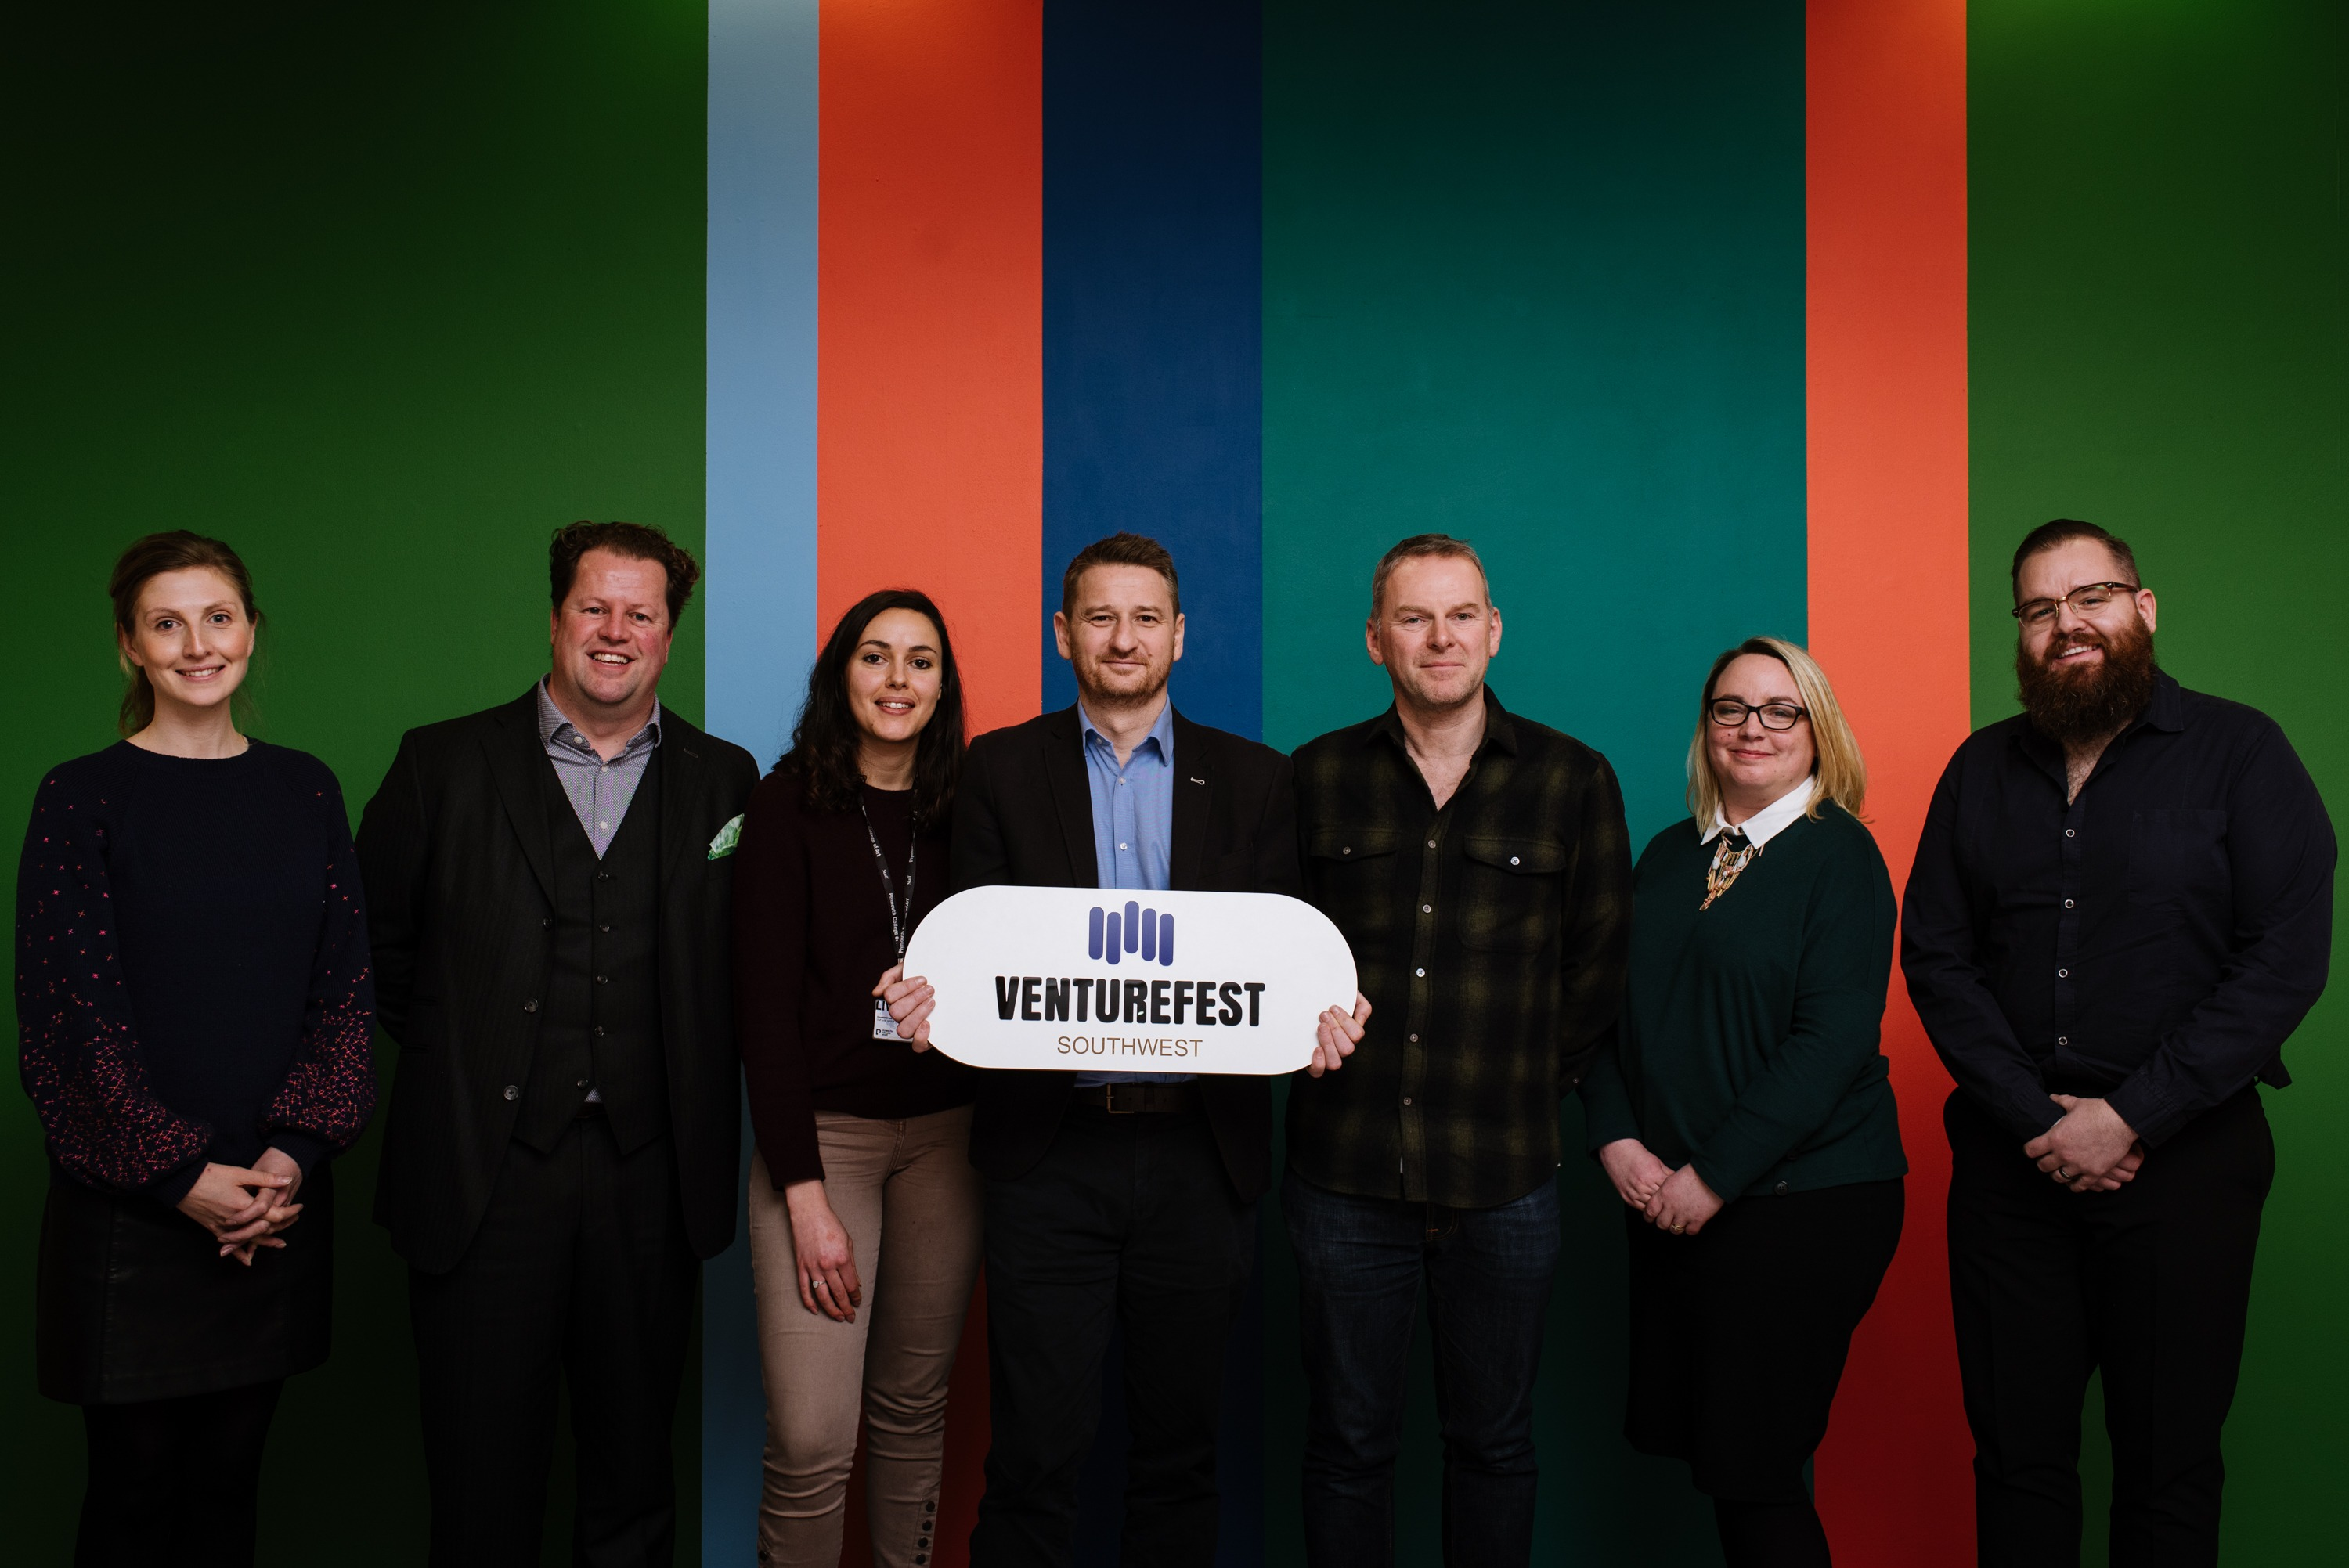 Venturefest South West set to return